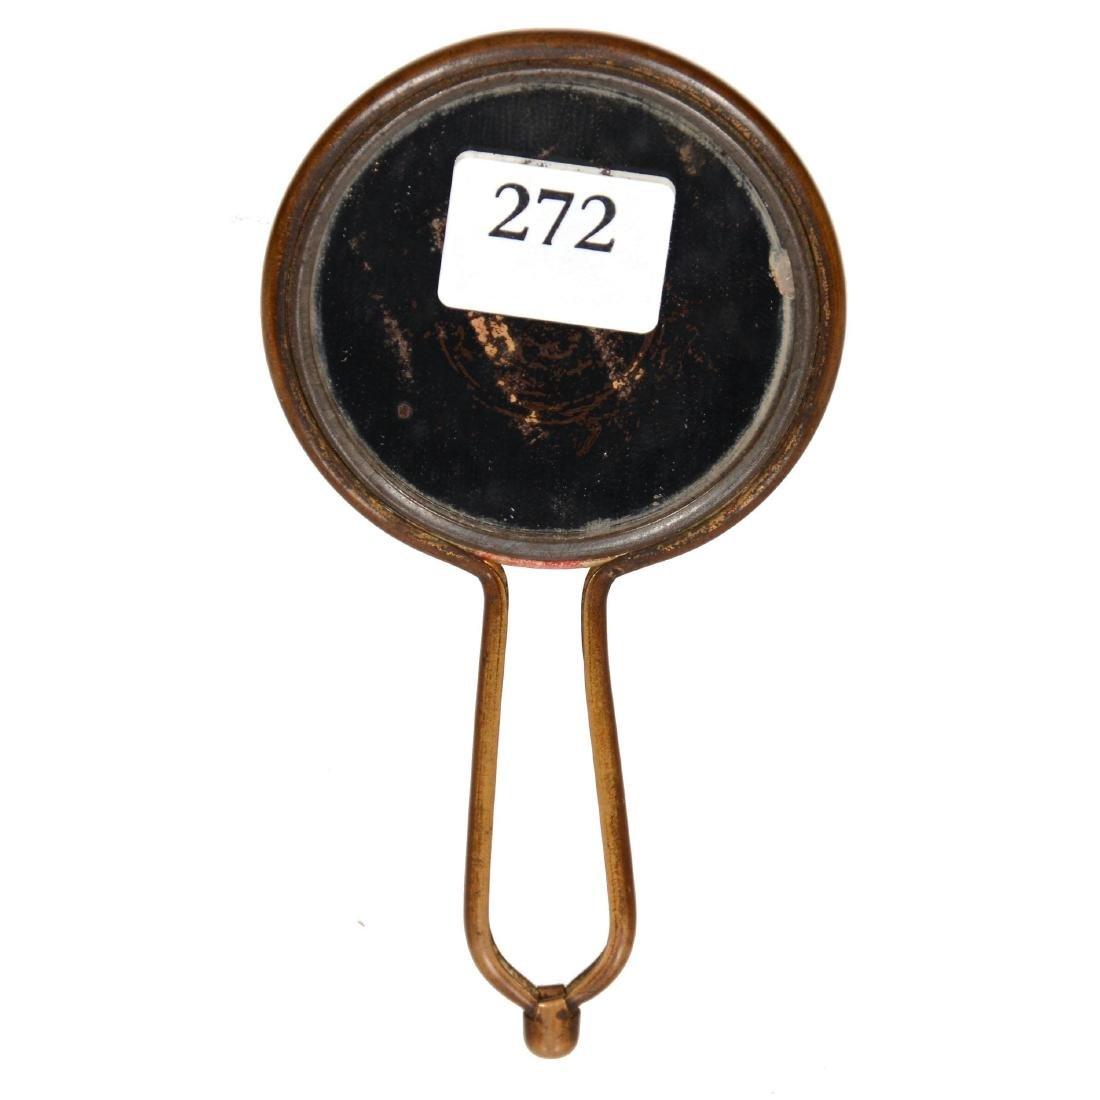 Original Miniature Hand Mirror - 2